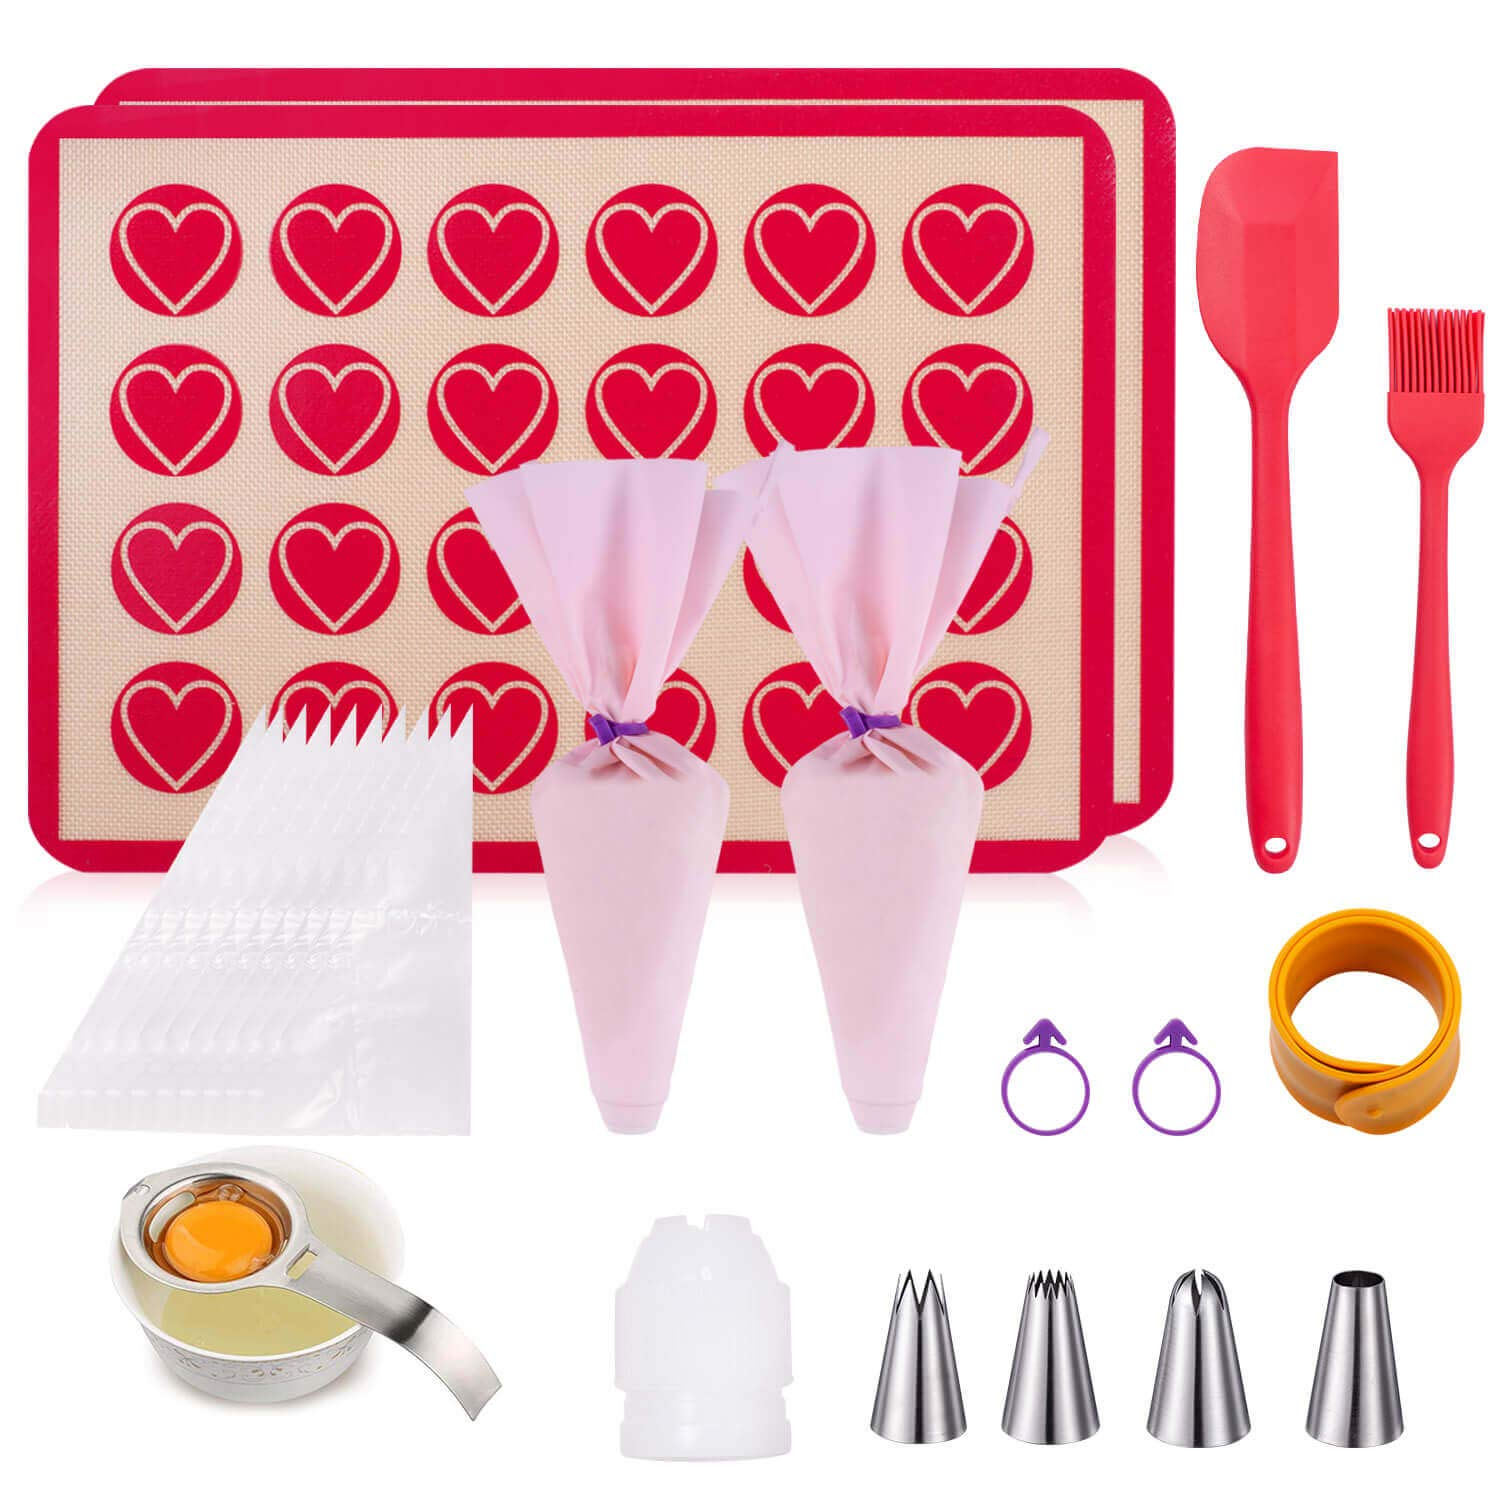 Macaron Mat Silicone Baking Mat for Macaron Baking Mat Kit(25 in 1) Macaroon Baking Mat Set,2 Half Sheet Macaron Silicone Mat,1 Egg Separator,1 Pastry Brush,1 Spatula,4 Frosting Tips,12 Piping Bags